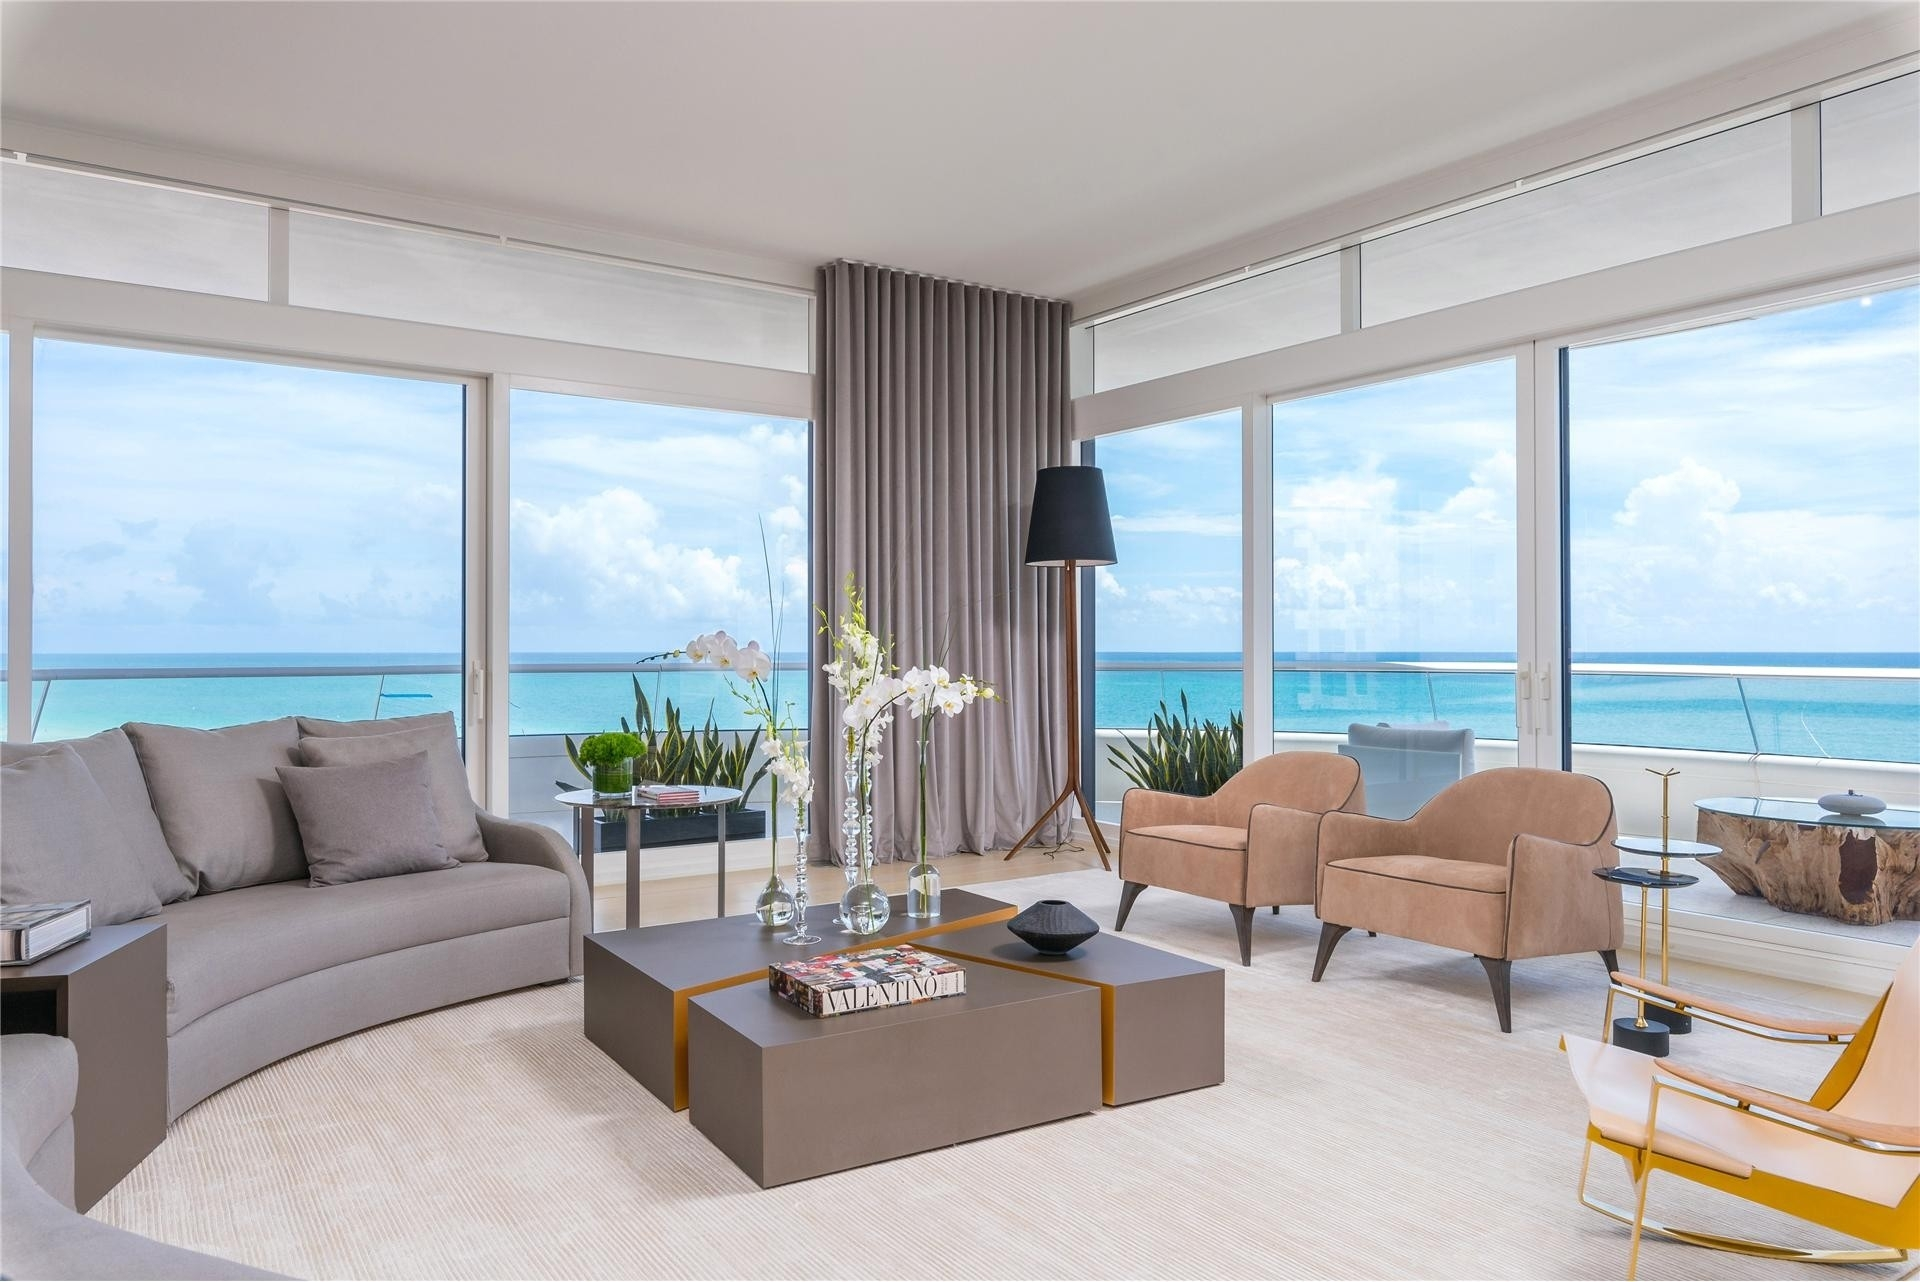 Condominium at 3315 COLLINS , 6-A Miami Beach